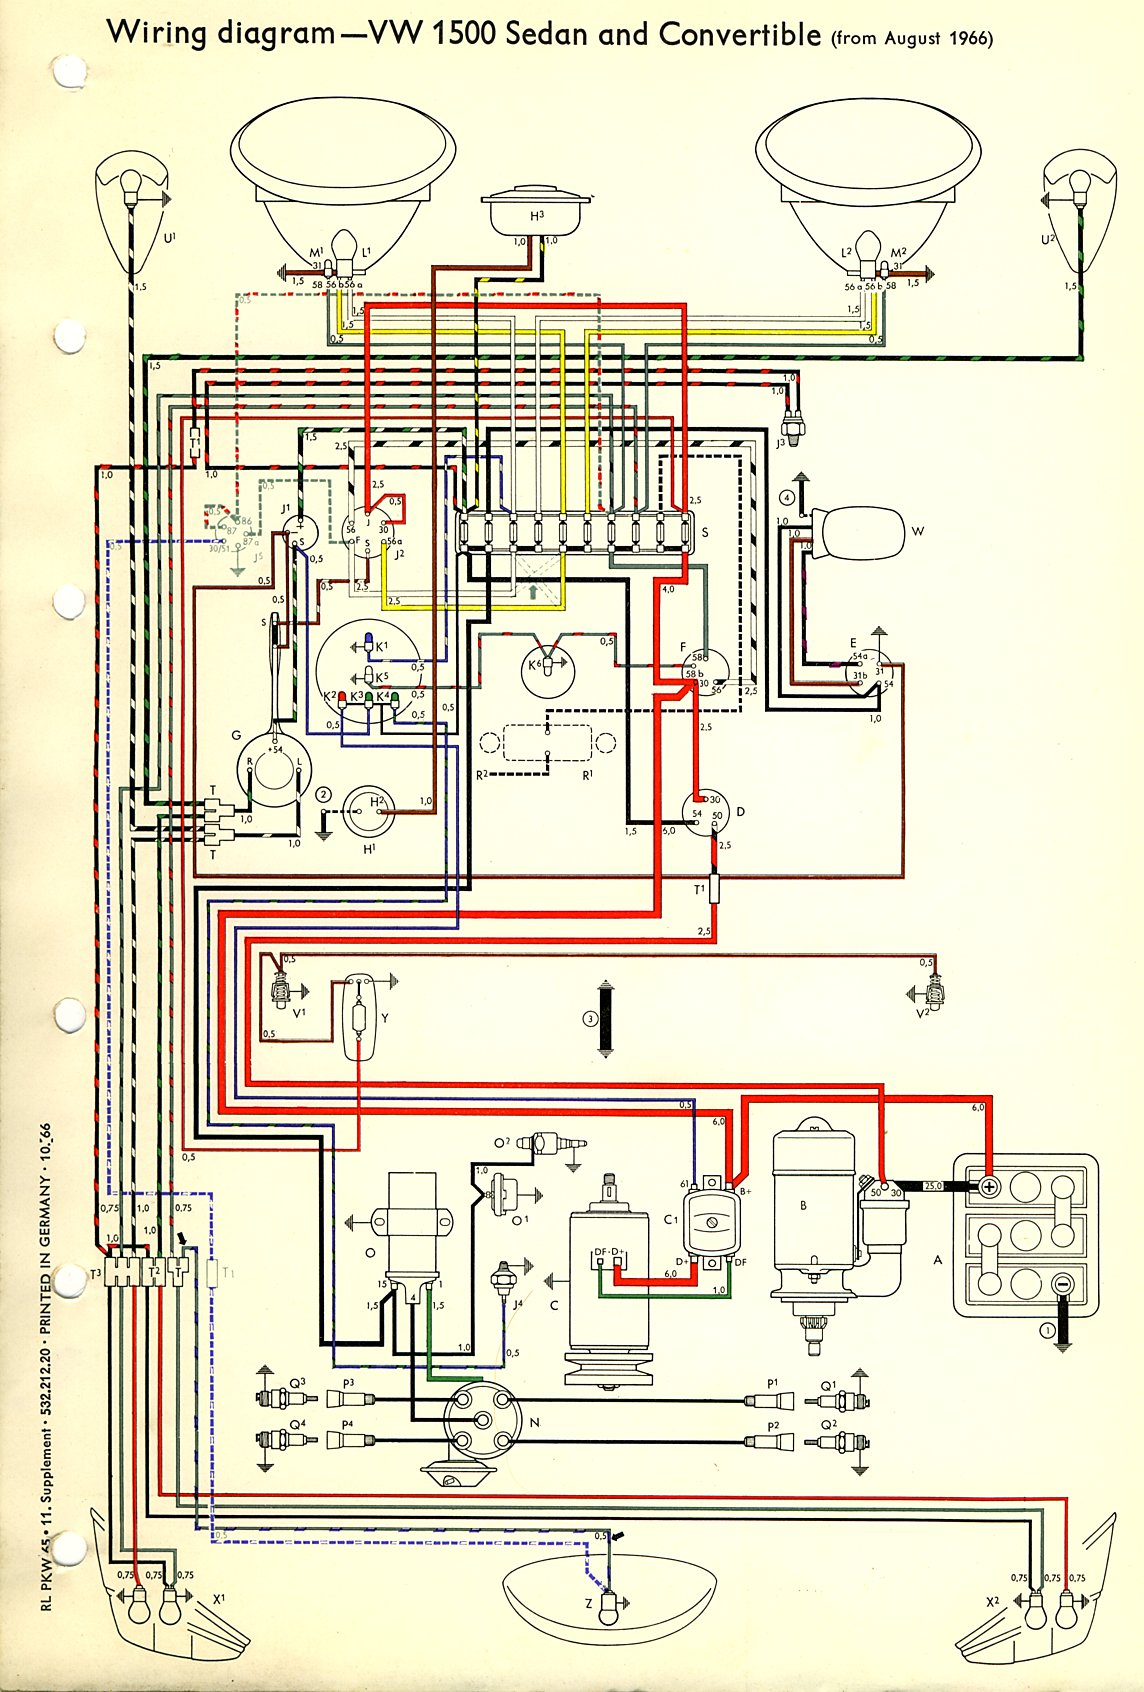 wiring diagram for 1973 vw beetle | general-speed wiring diagram union -  general-speed.buildingblocks2016.eu  buildingblocks2016.eu